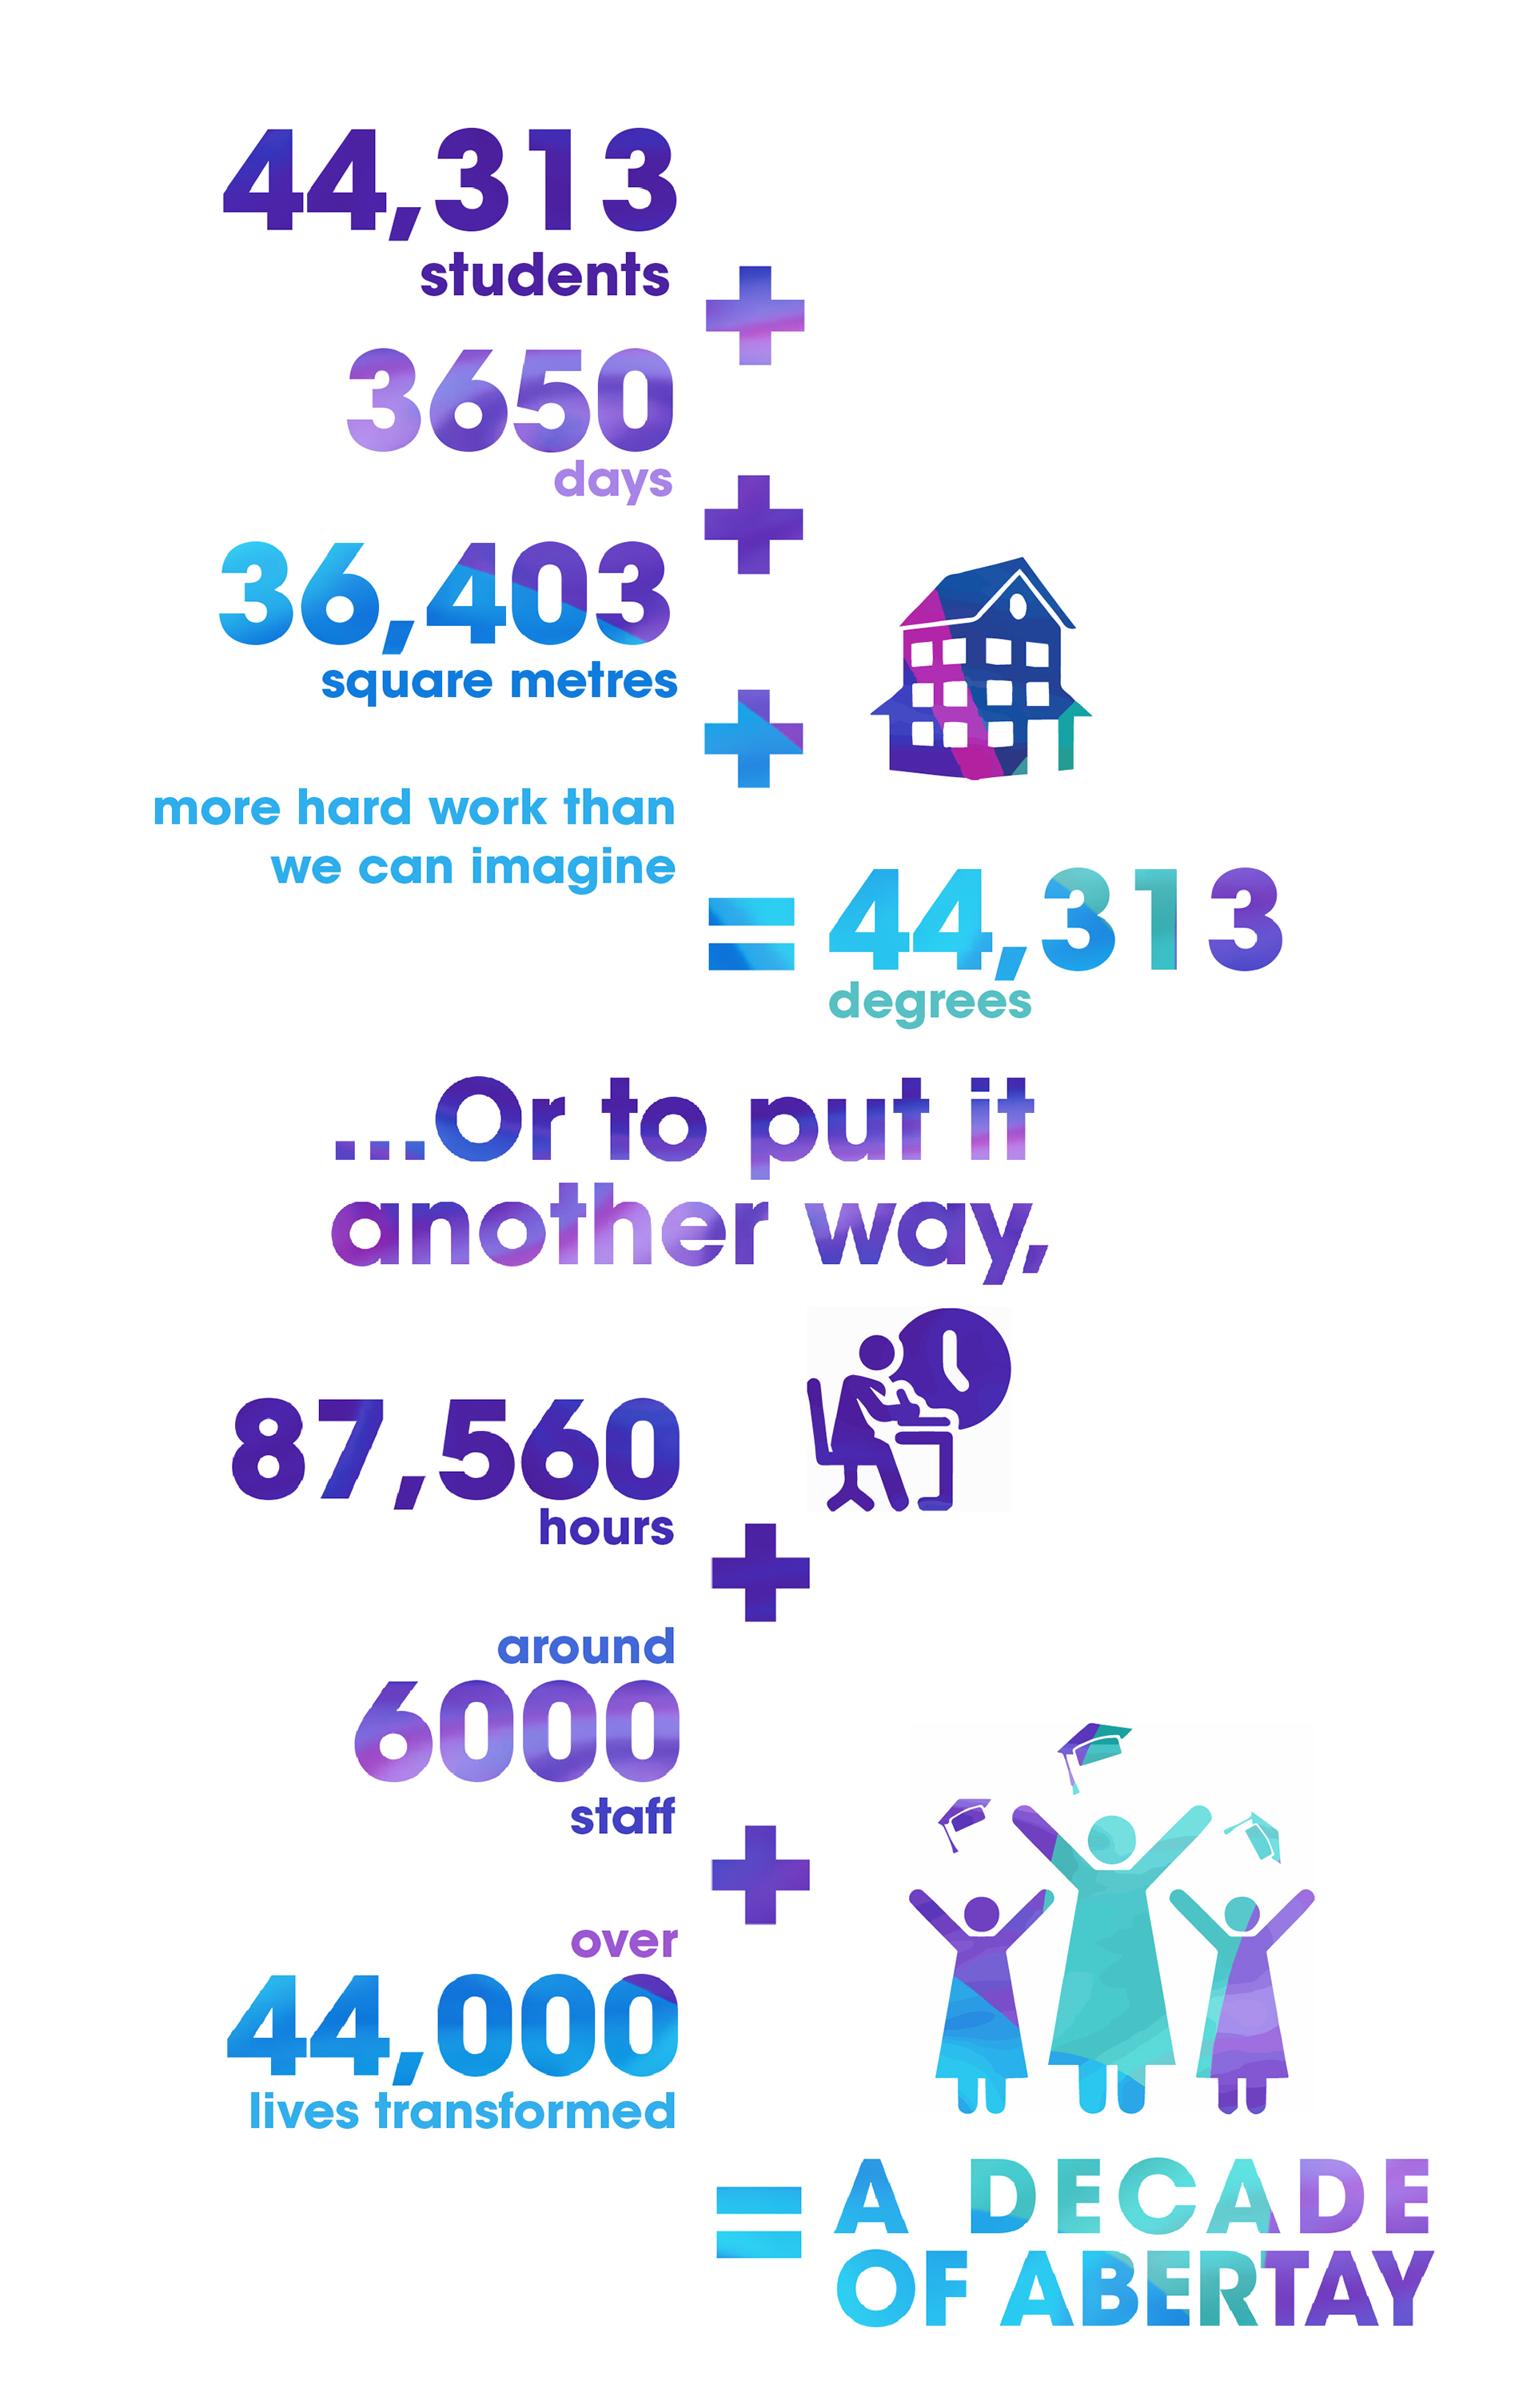 Infographic stating: 44313 students + 3650 days +  36403 square metres +  more hard work than we can imagine = 44313 degrees   ...Or to put it another way, 87560 hours +  around 6000 staff +  over 44000 lives transformed  = a decade of Abertay.